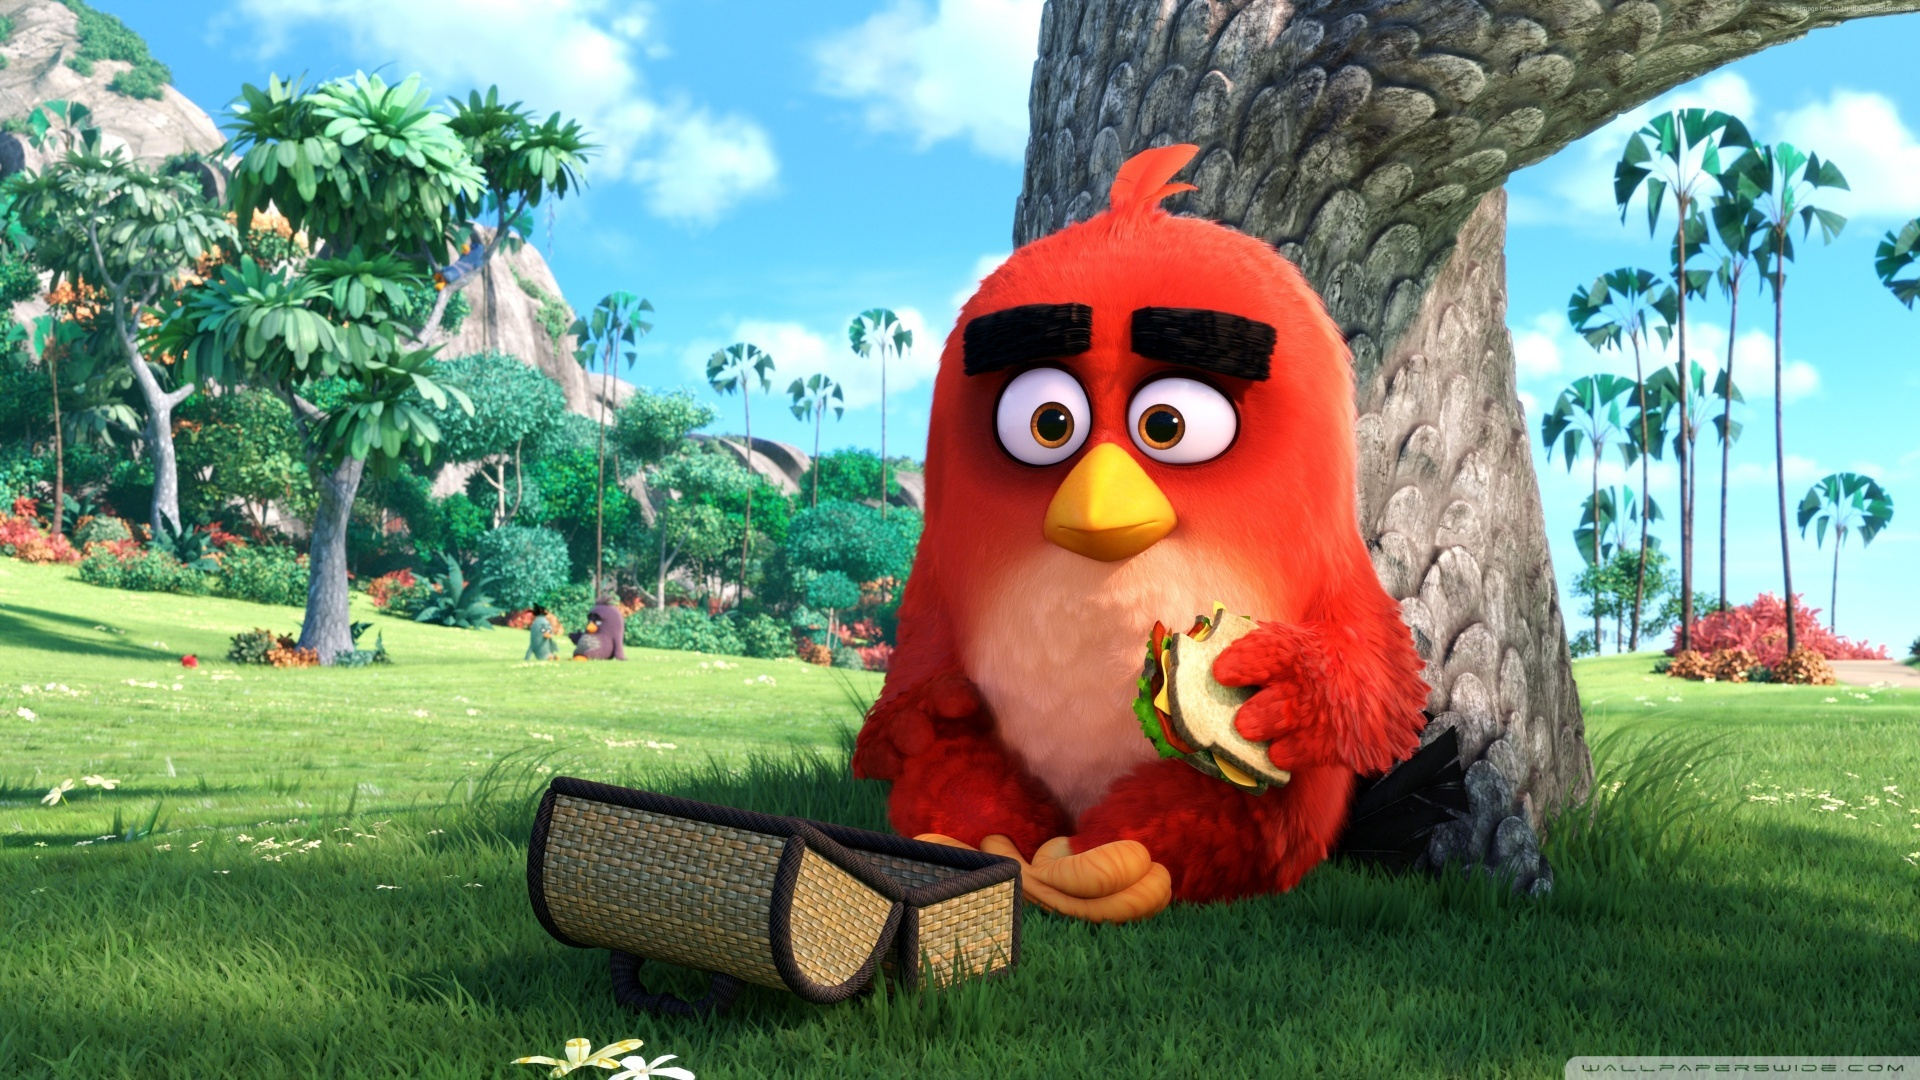 Download Free WallpaperRed Angry Birds Movie